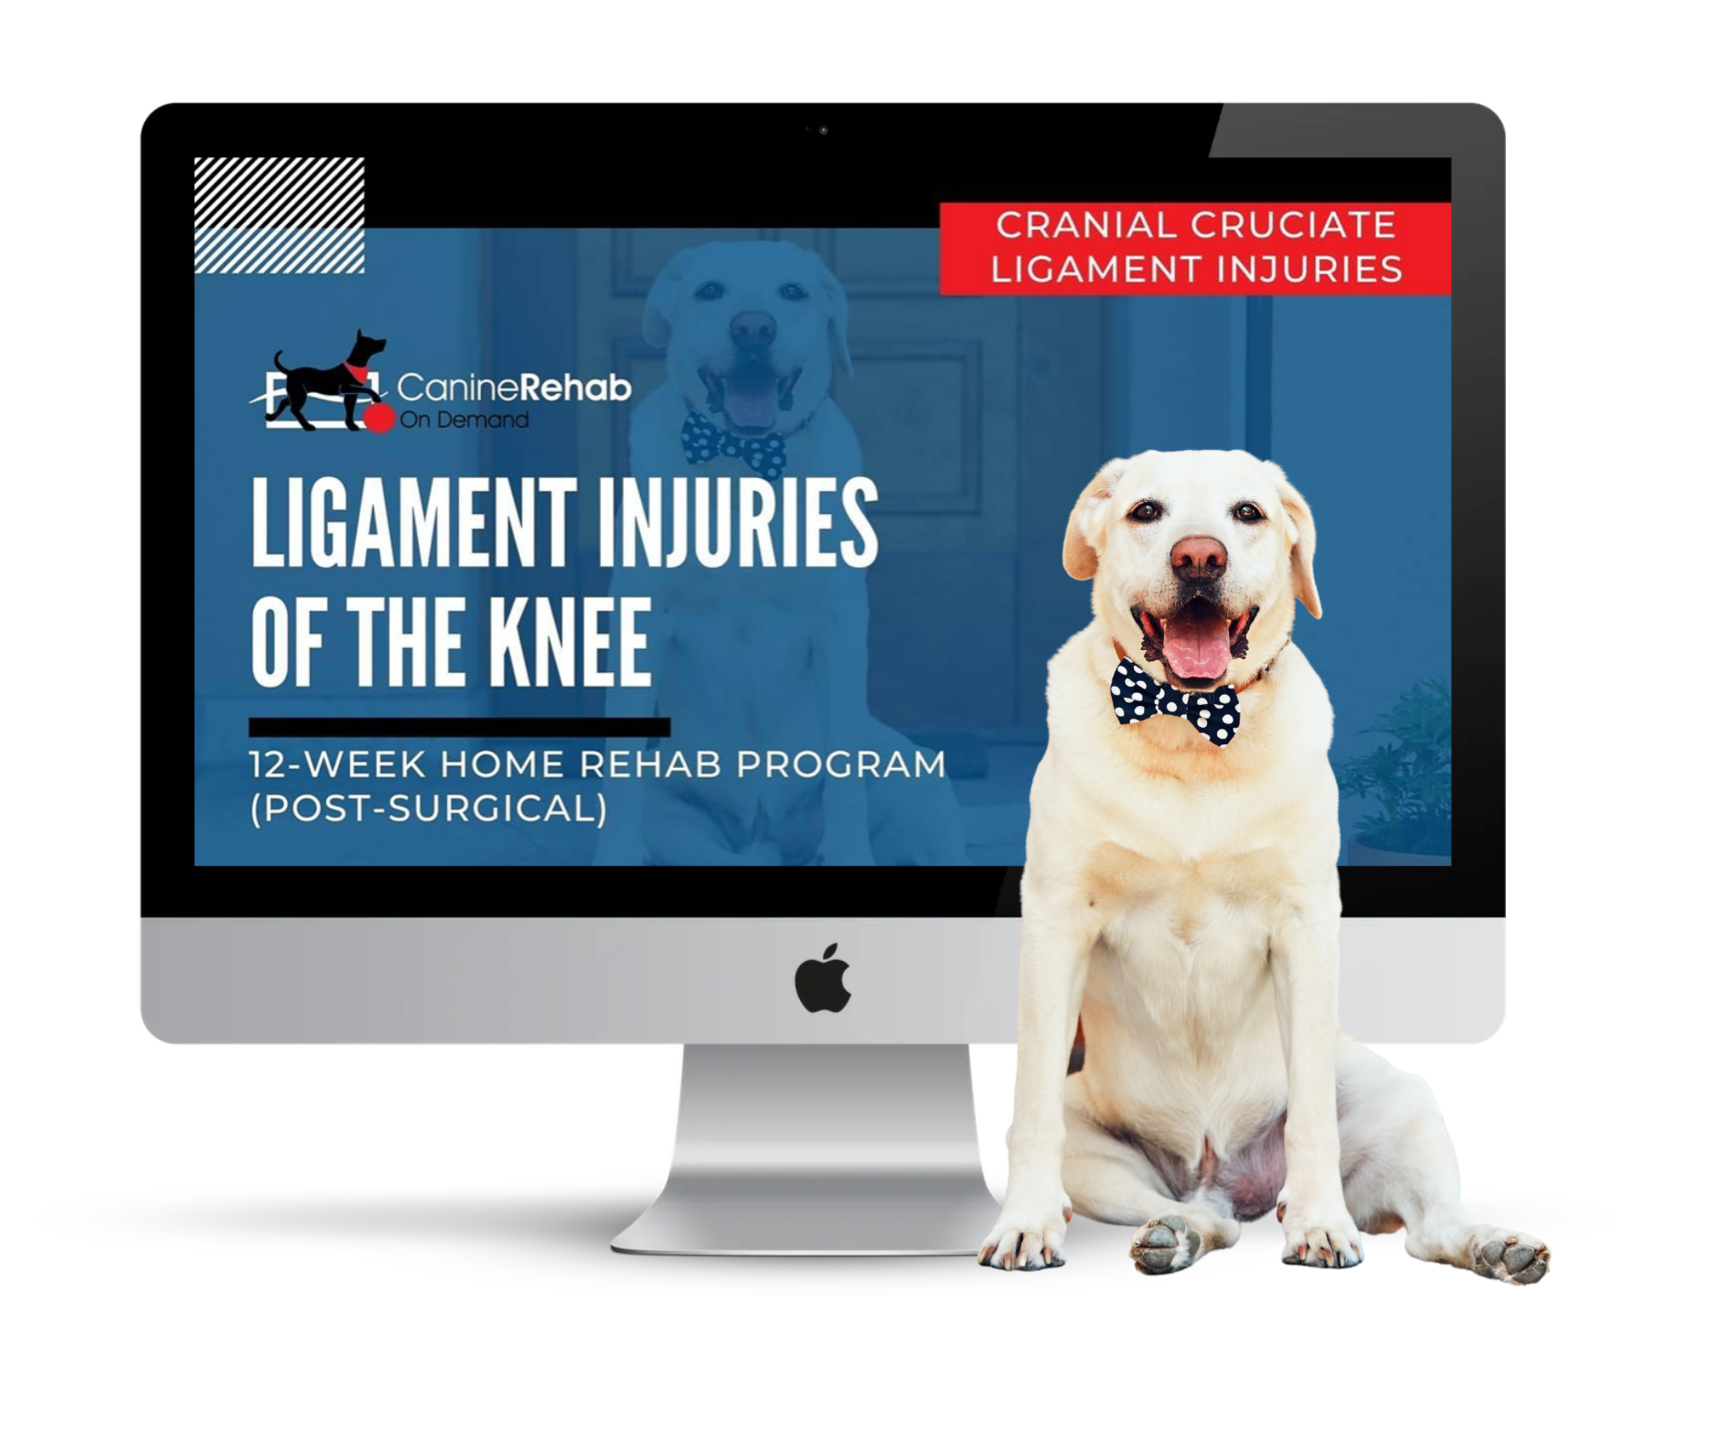 Ligament Injuries of the Knee 12-Week Home Rehab Program